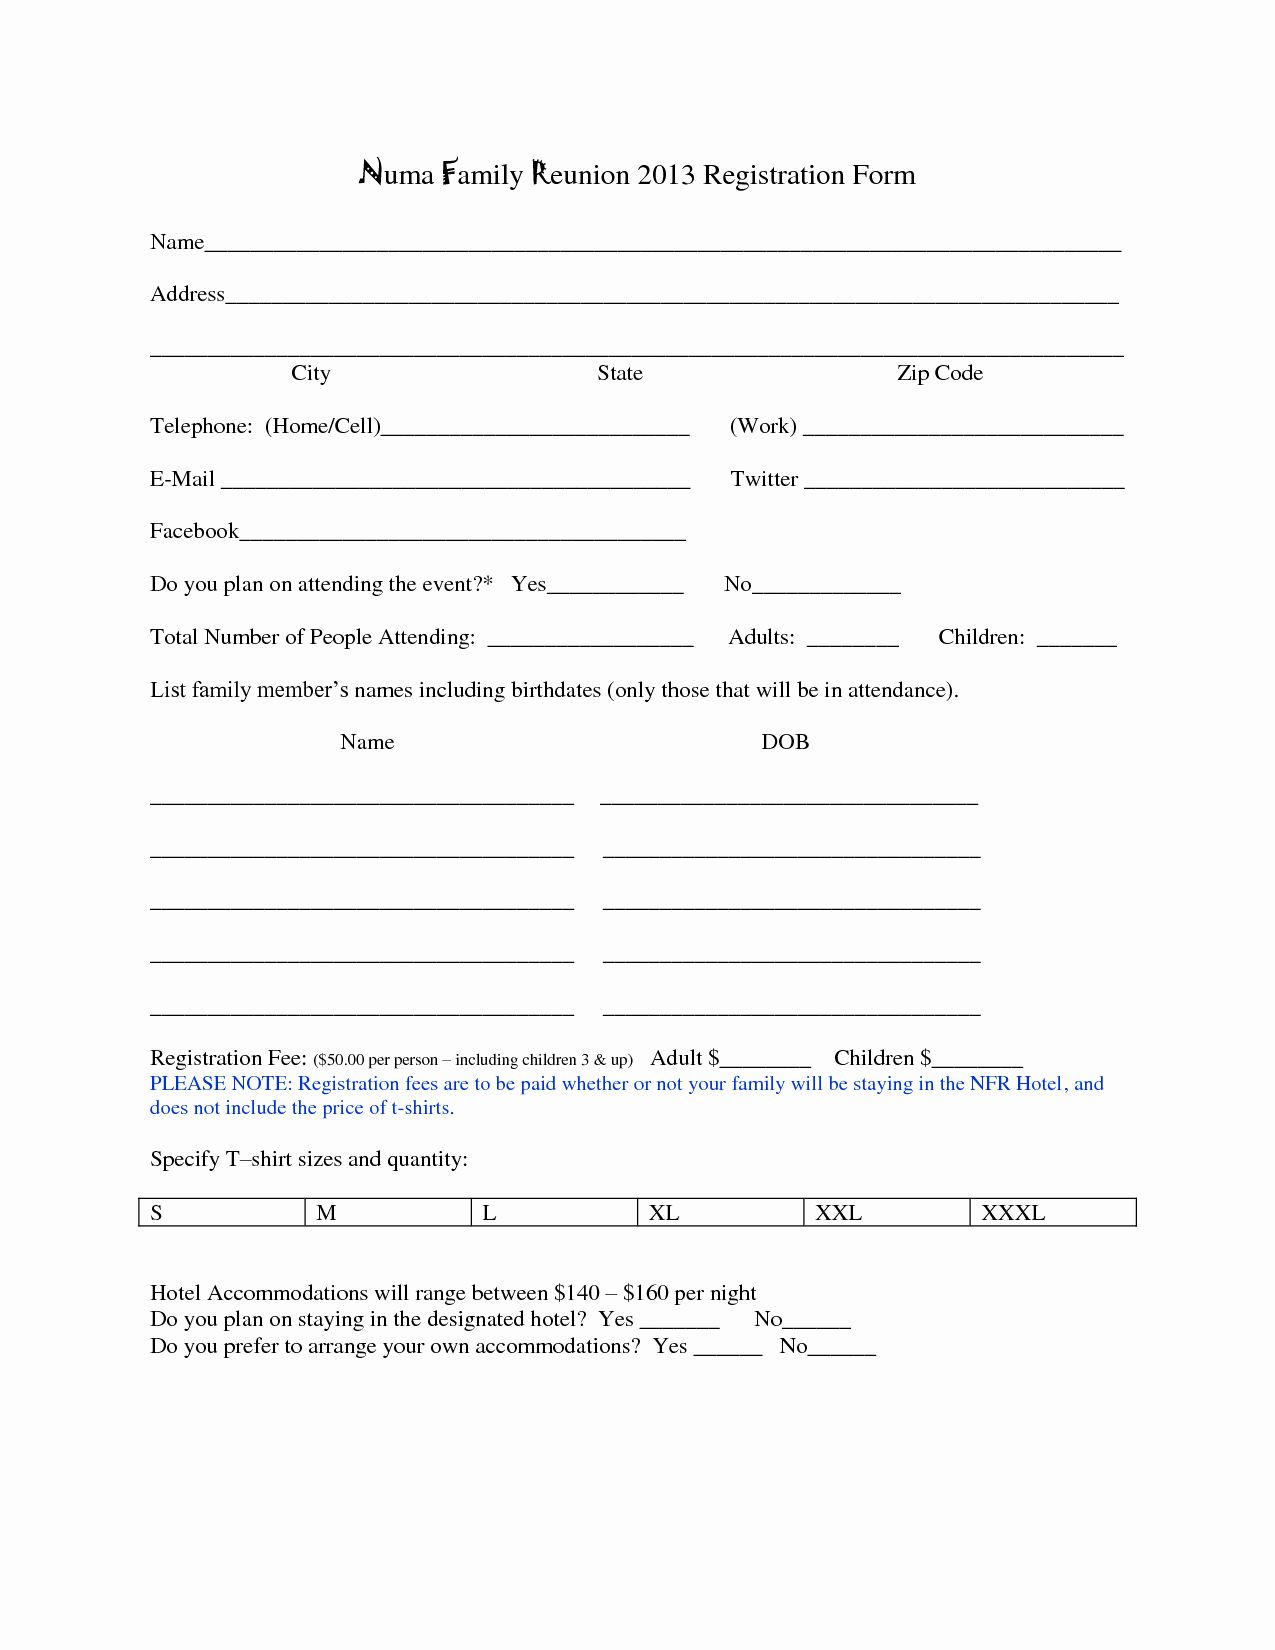 Printable Hotel Registration Form Template Word